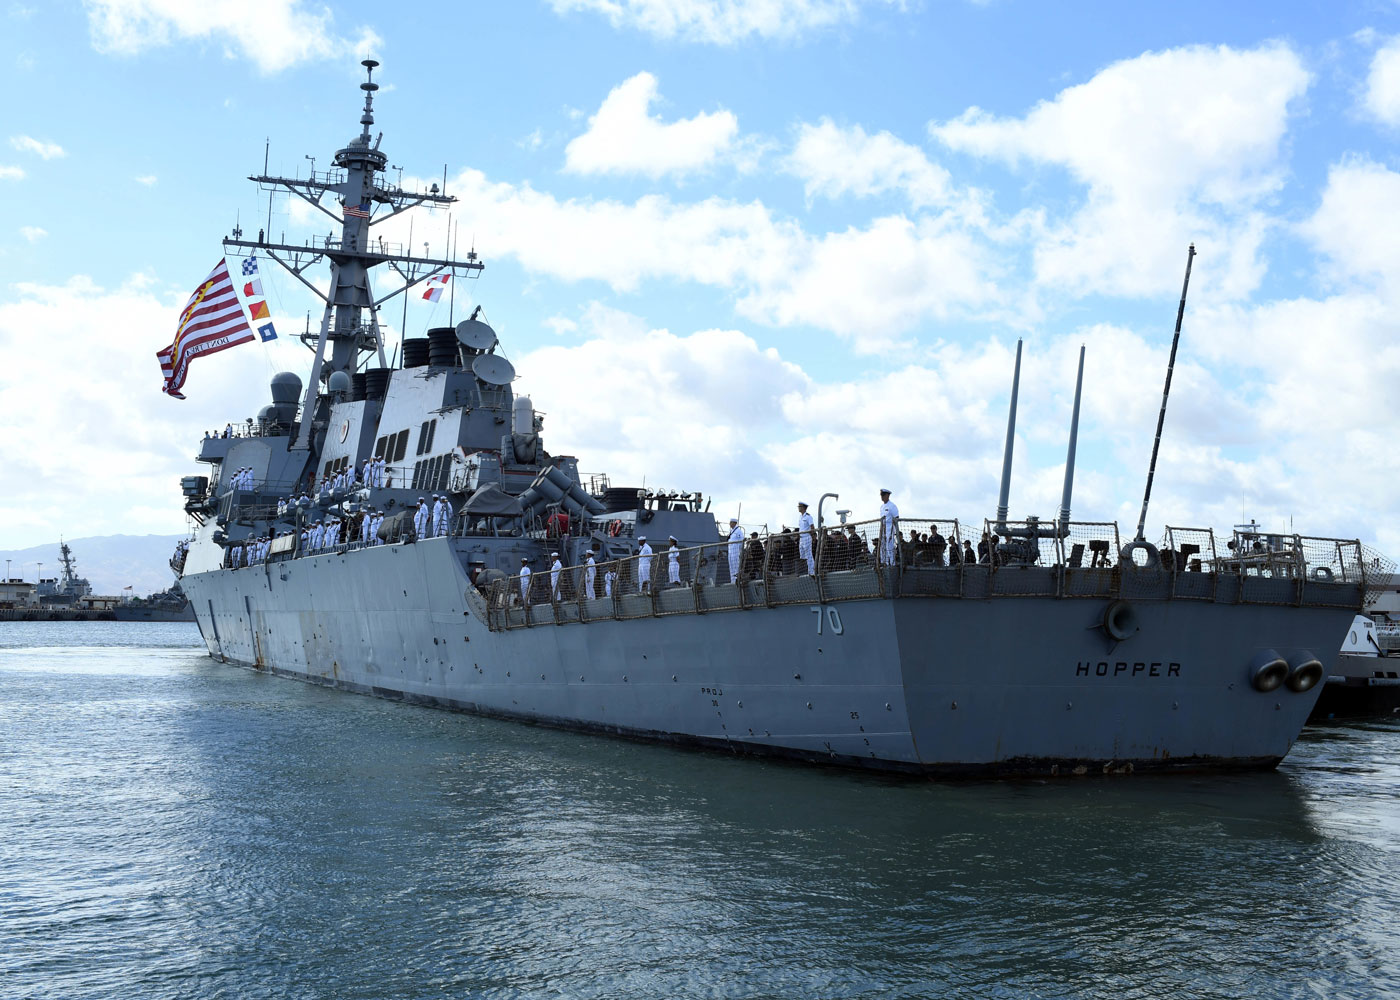 USS Hopper has a crew of nearly 330 officers and enlisted Sailors and is a multi-mission ship designed to operate independently or with an associated strike group.